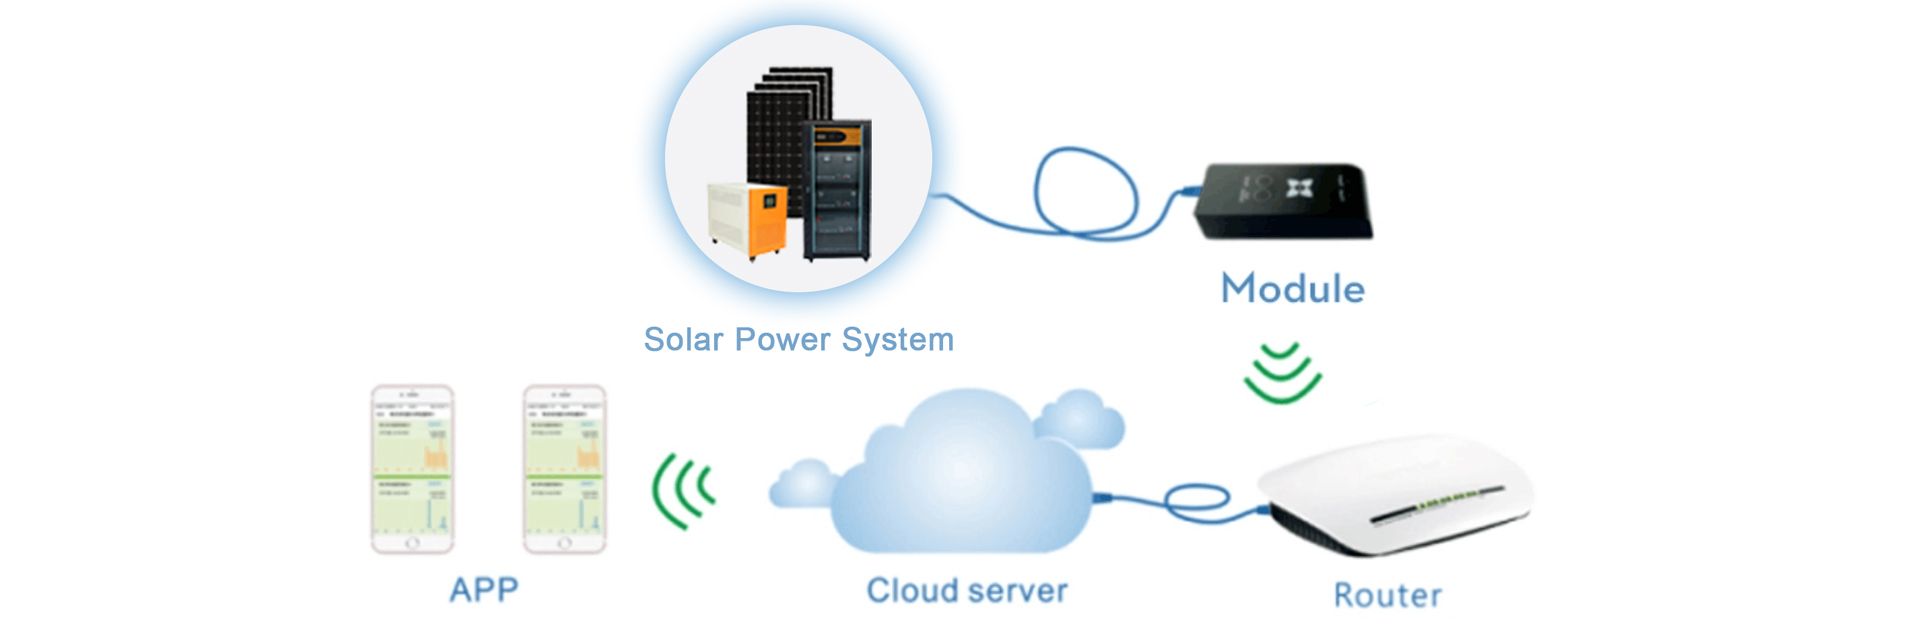 Solar Panel System With WIFI